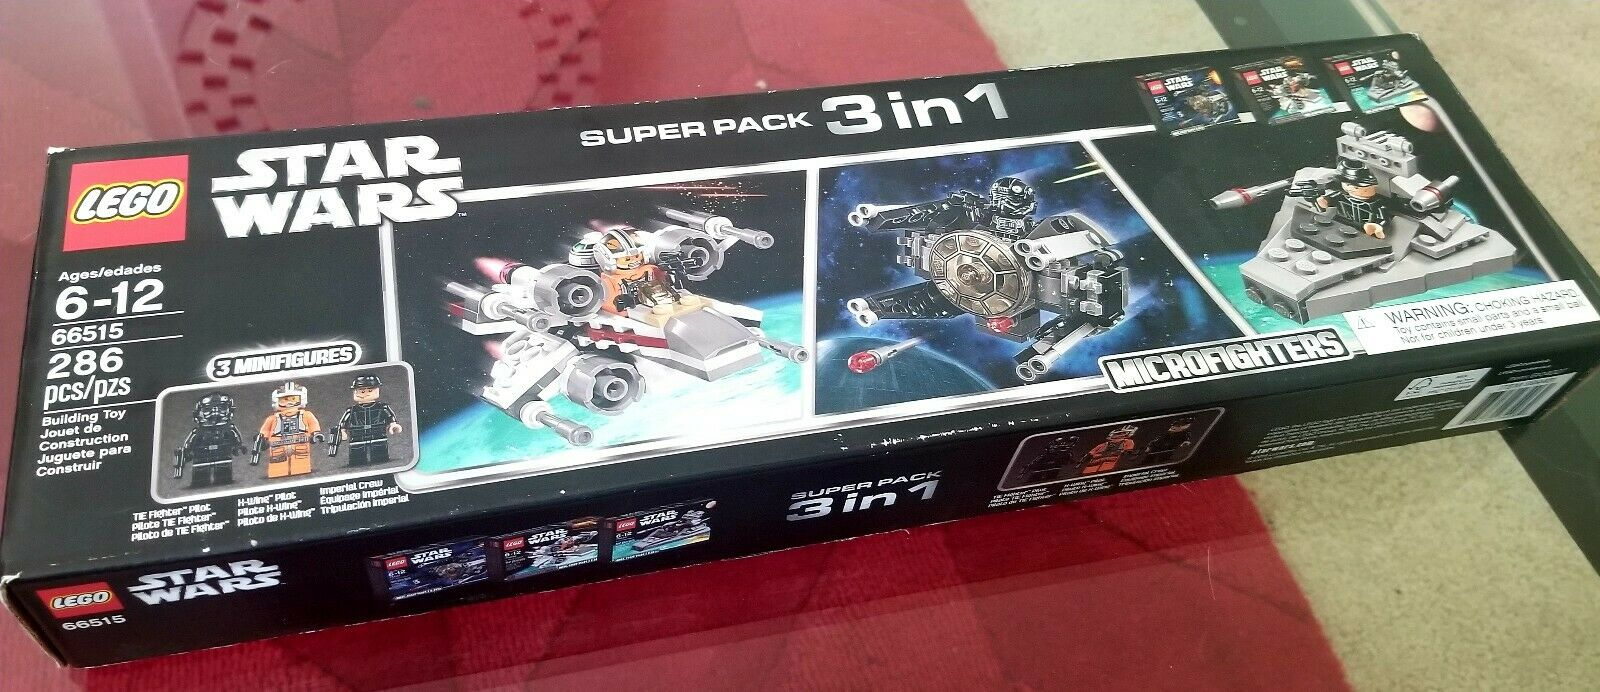 Star Wars Lego Microfighters Super Pack 3 in 1 Set  2 AFA 9.0  Minifigures XWING